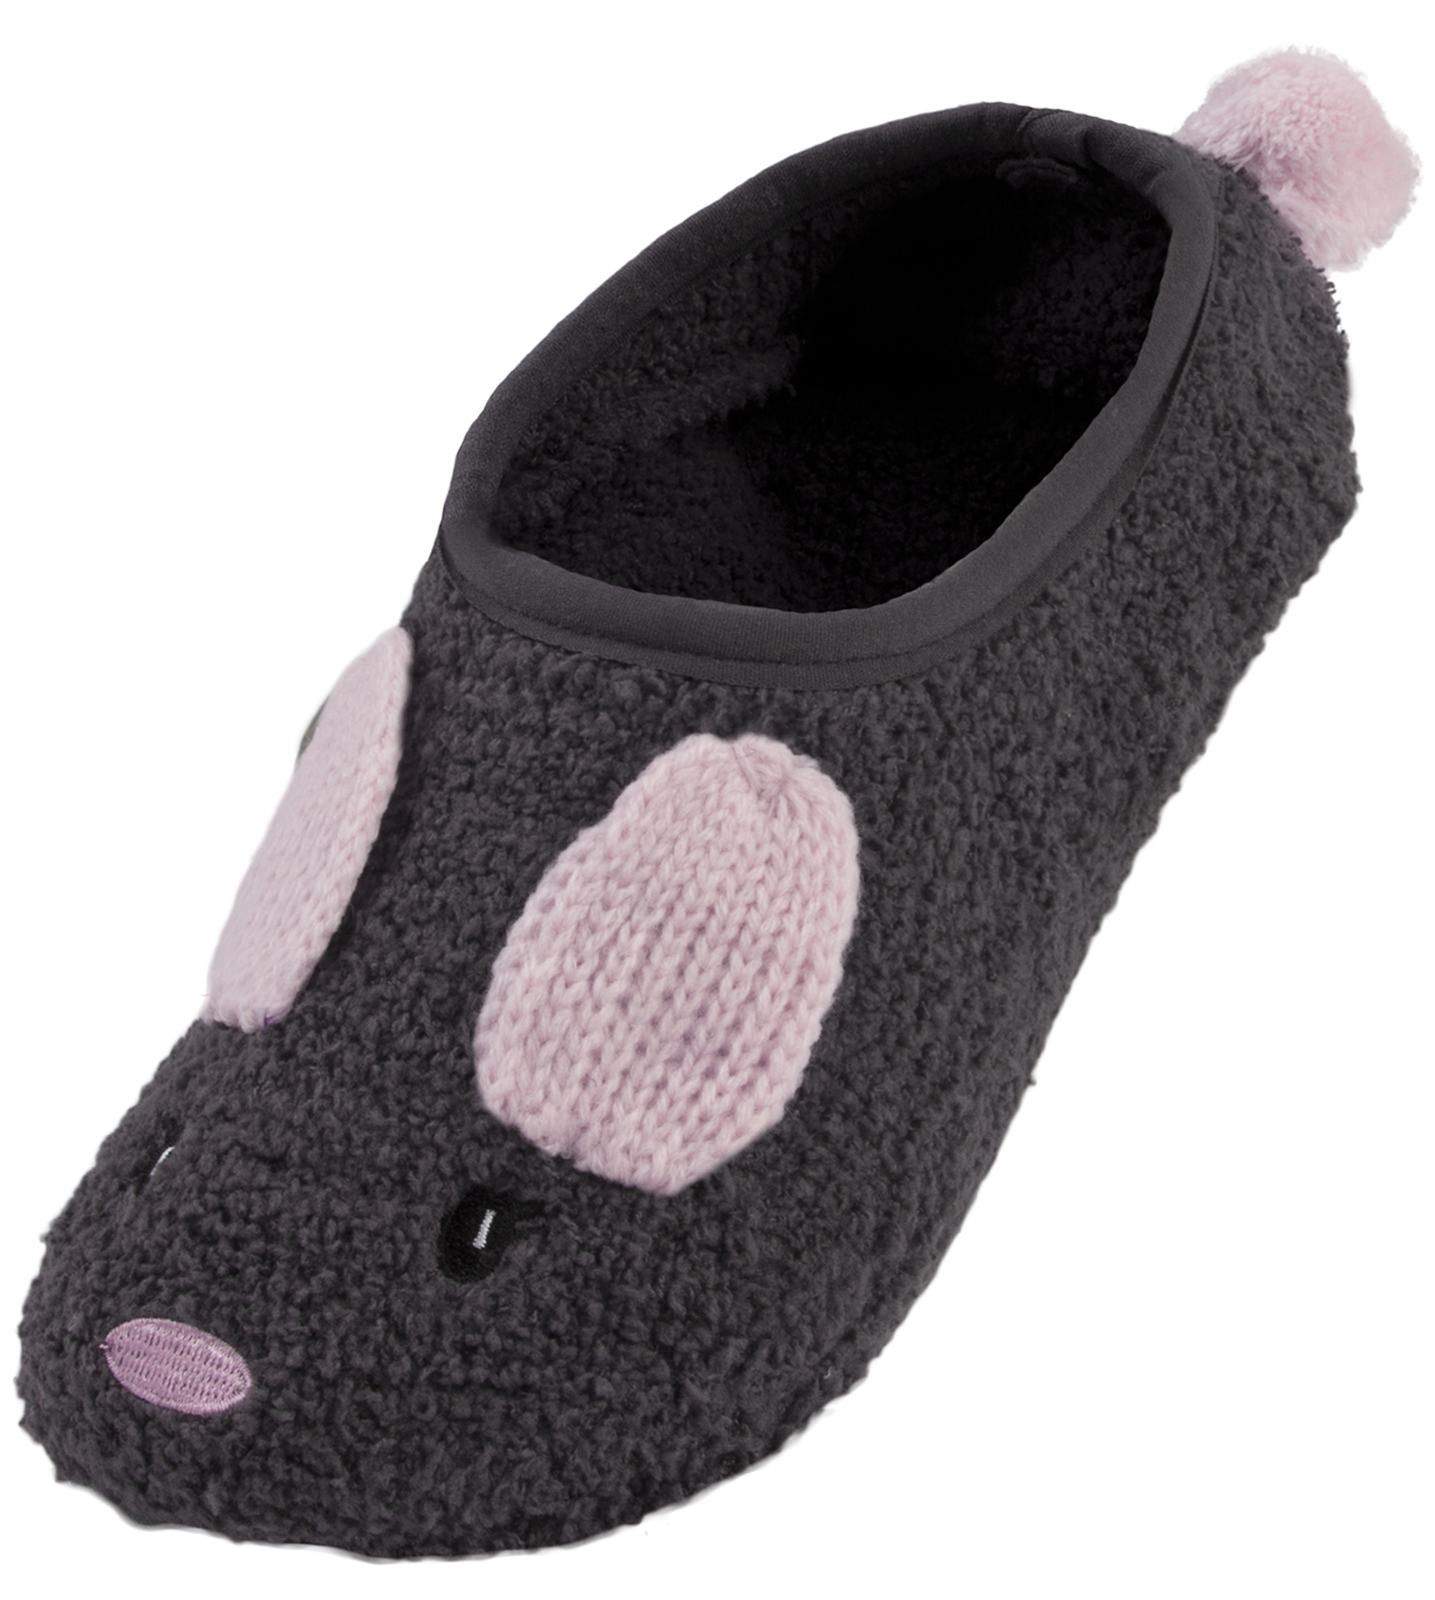 Womens 3D Animal Footlets Slipper Socks Novelty Fleece Bed Socks